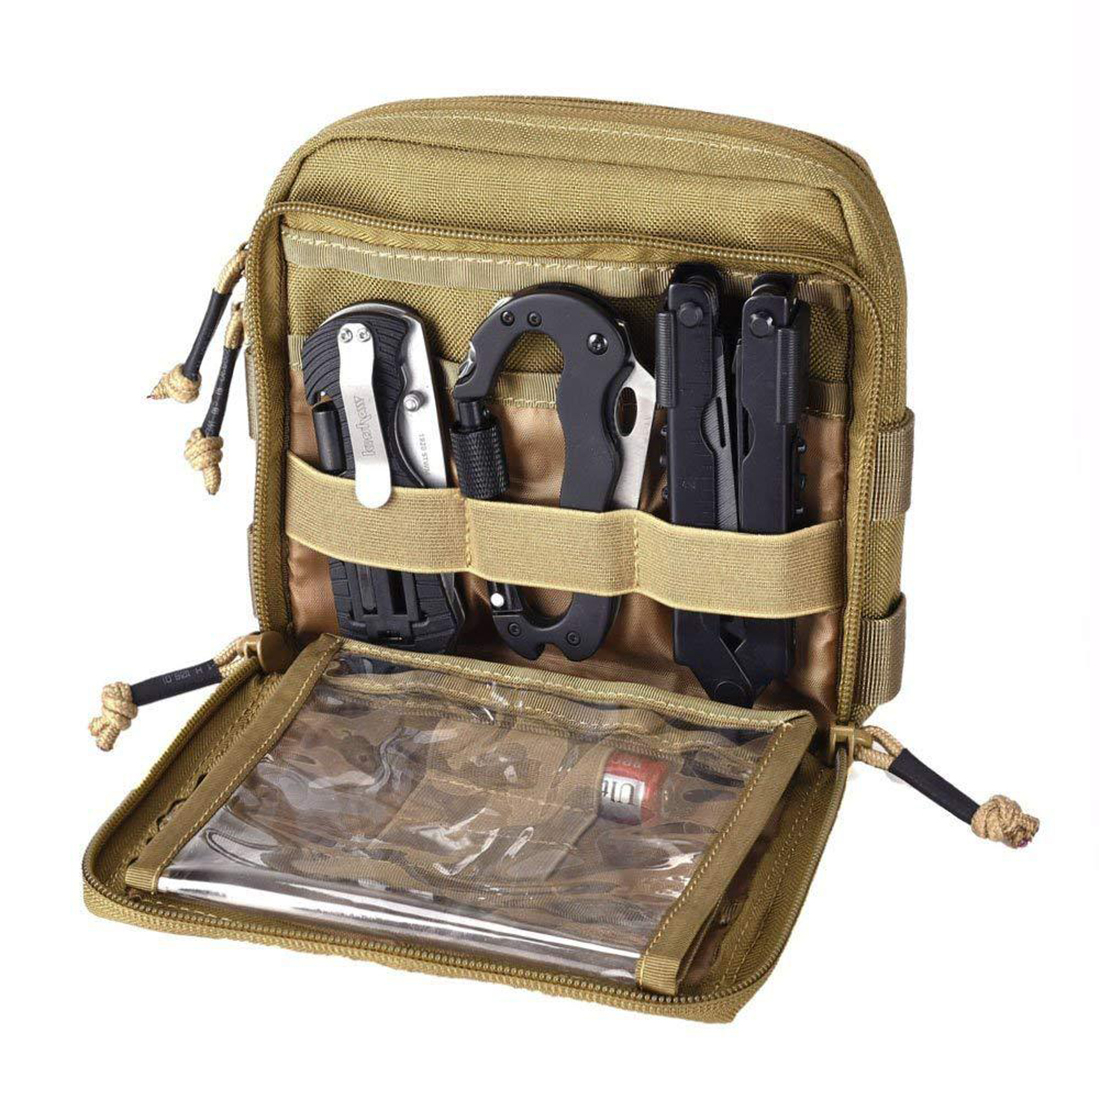 Tactical Gear Utility Map Admin Pouch EDC Tool Molle Bag Organizer For Molle System - Tan